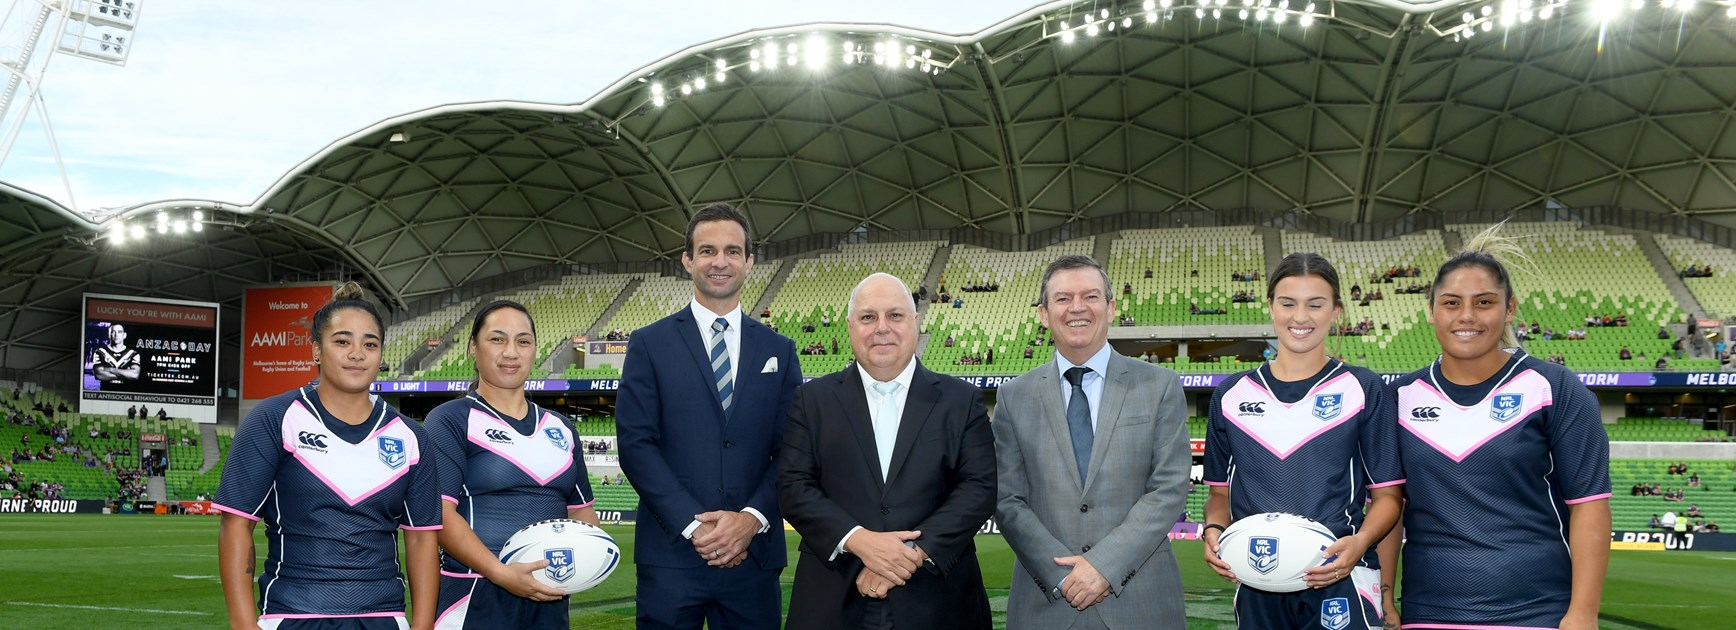 Rugby League receives landmark funding in Victoria